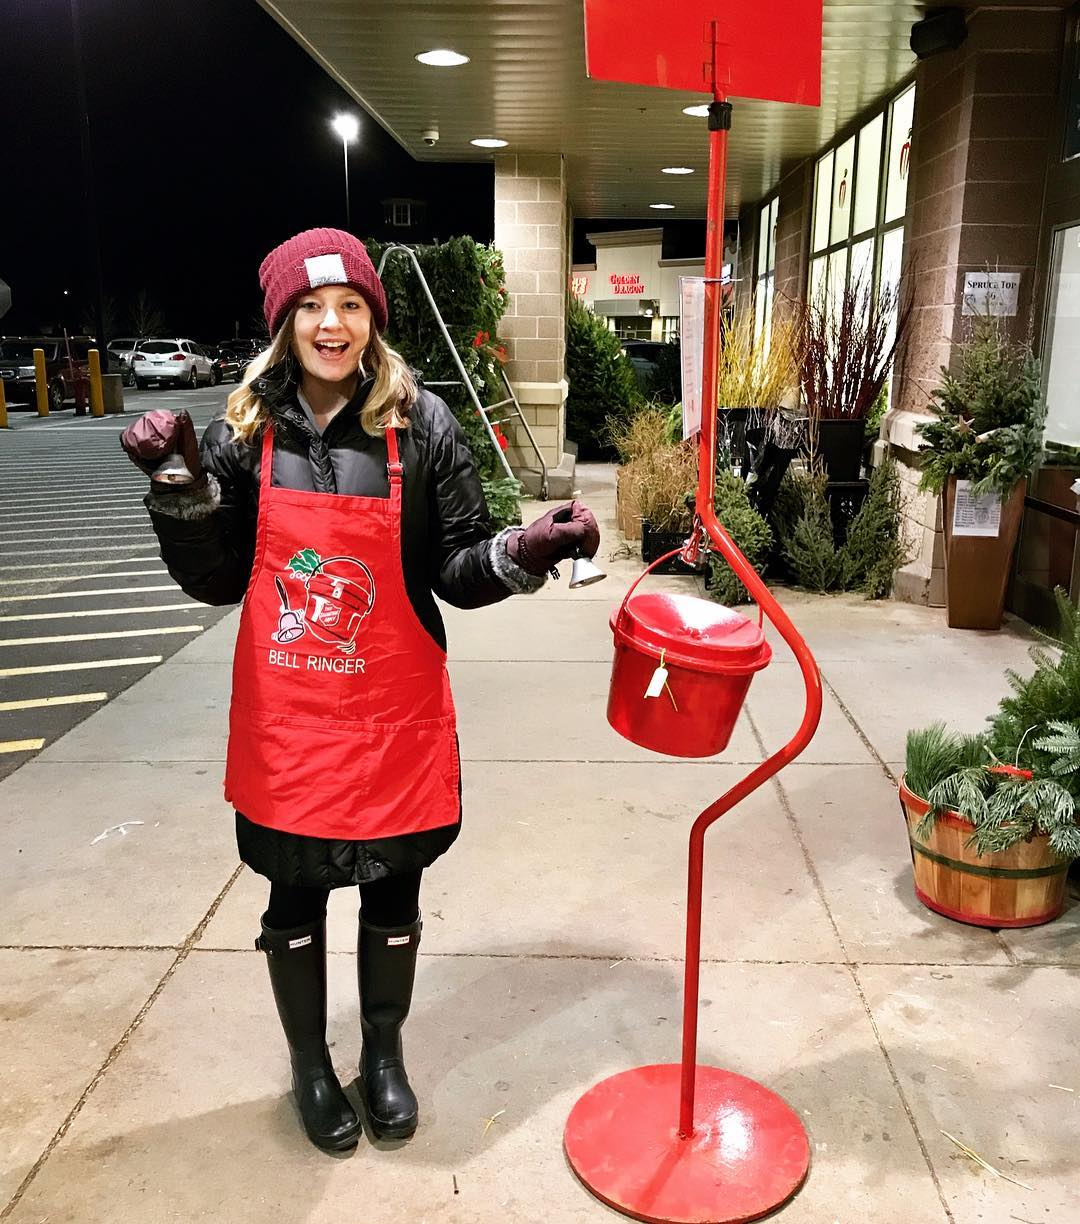 Volunteering for the Salvation Army